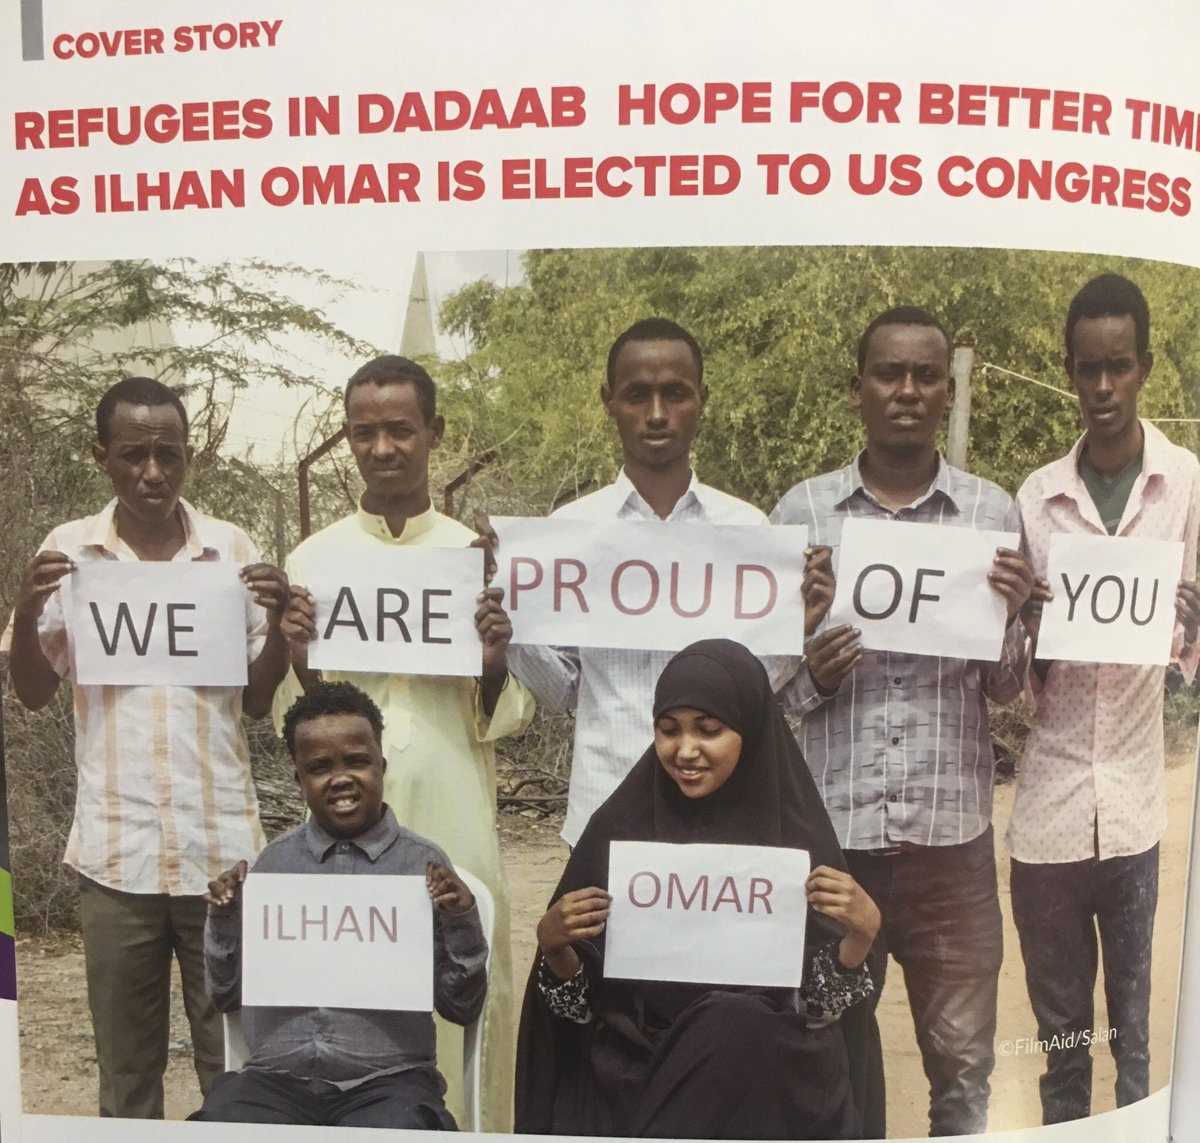 We are all proud of her! @IlhanMN